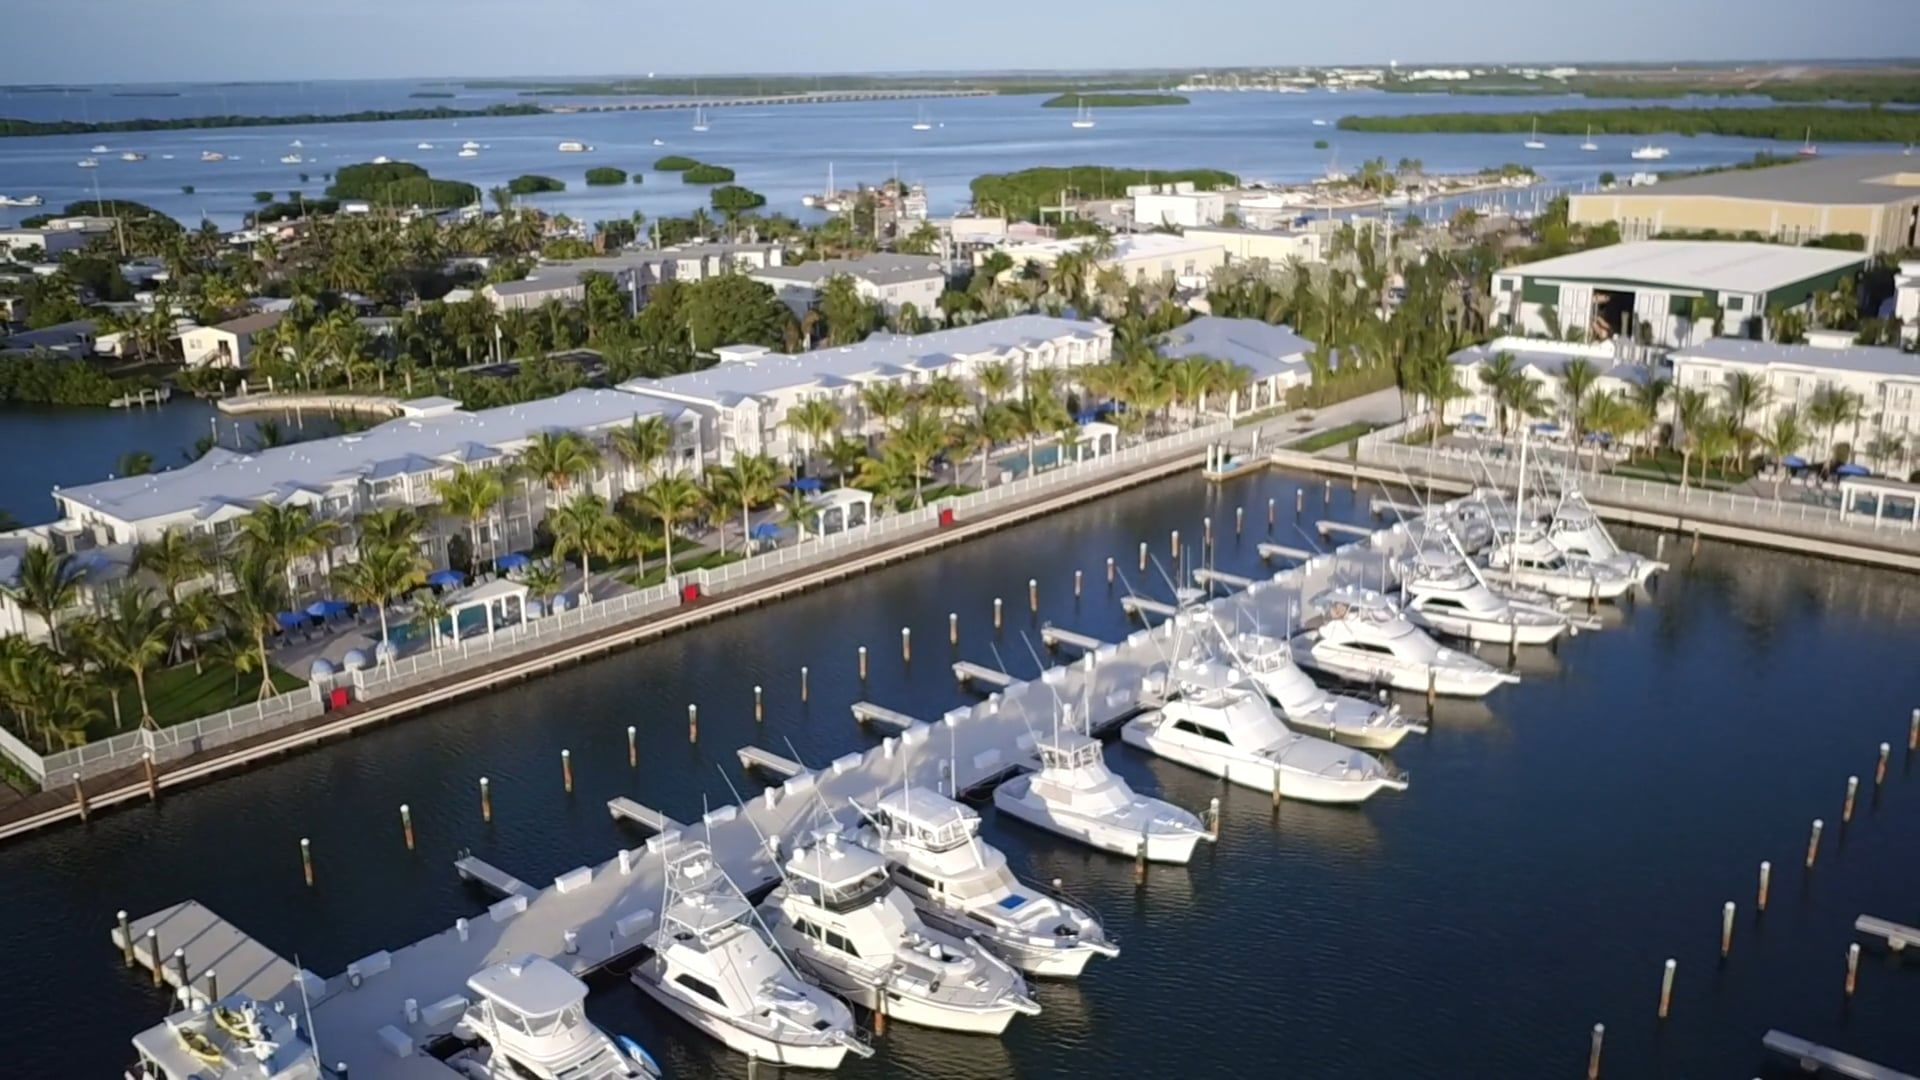 Ocean S Edge Hotel Marina Welcome To The Other Side Of Key West